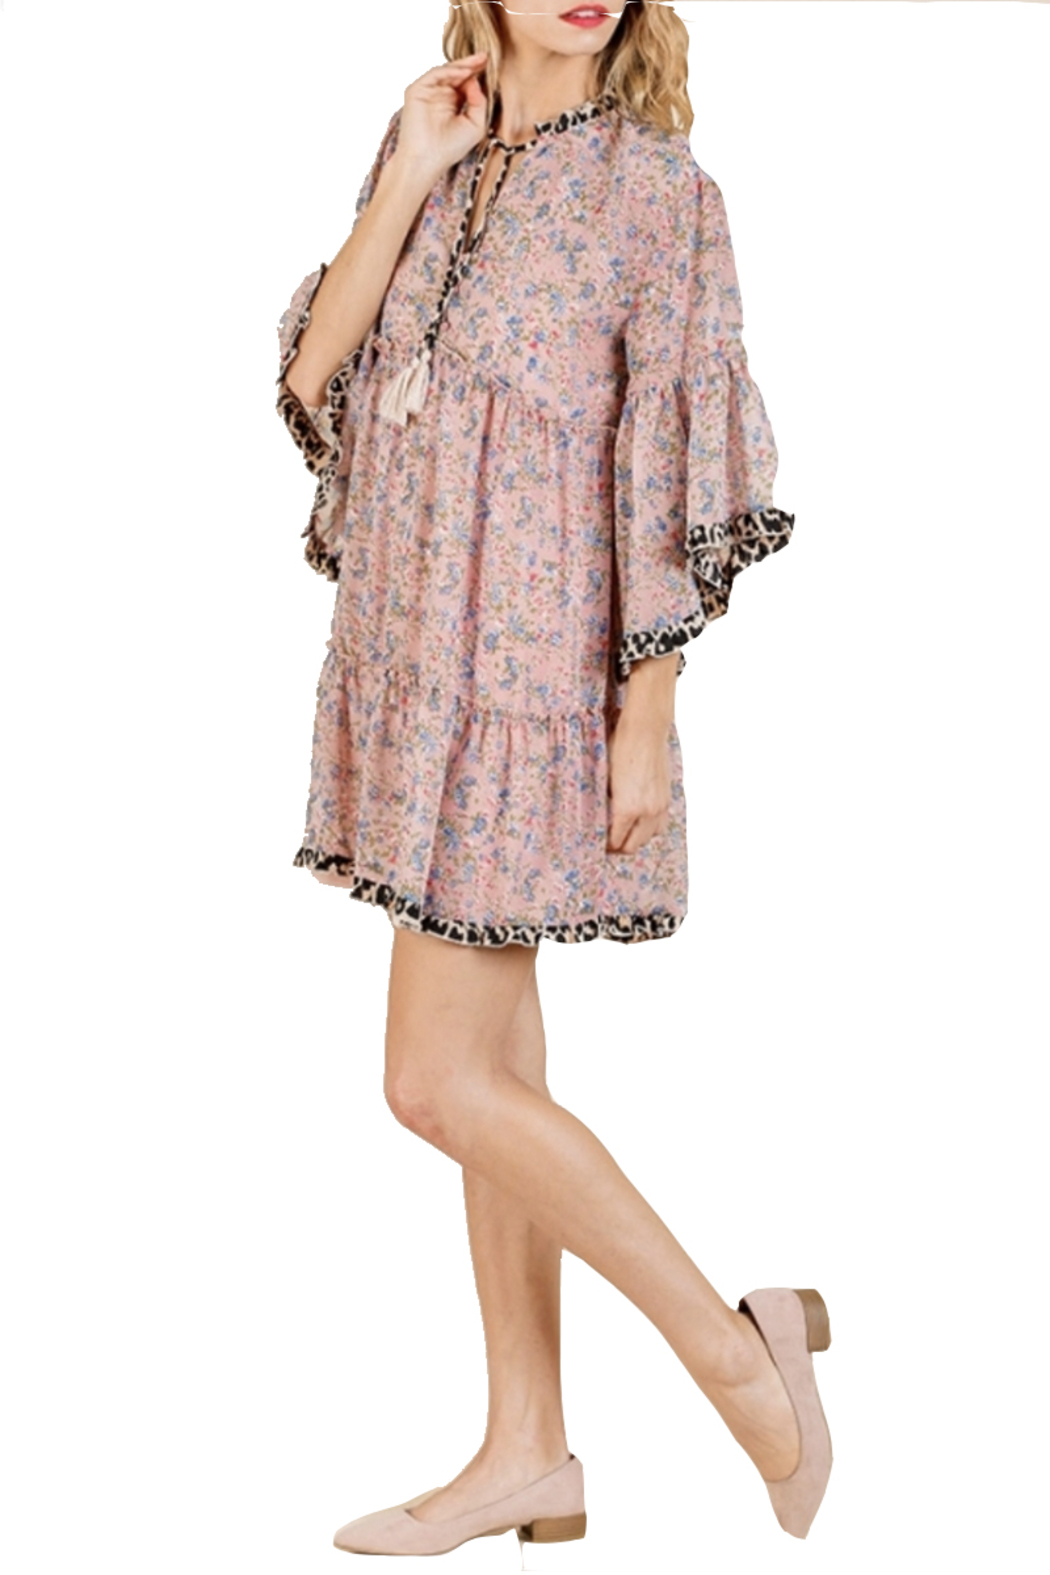 Umgee Dusty Pink Floral Dress - Front Full Image